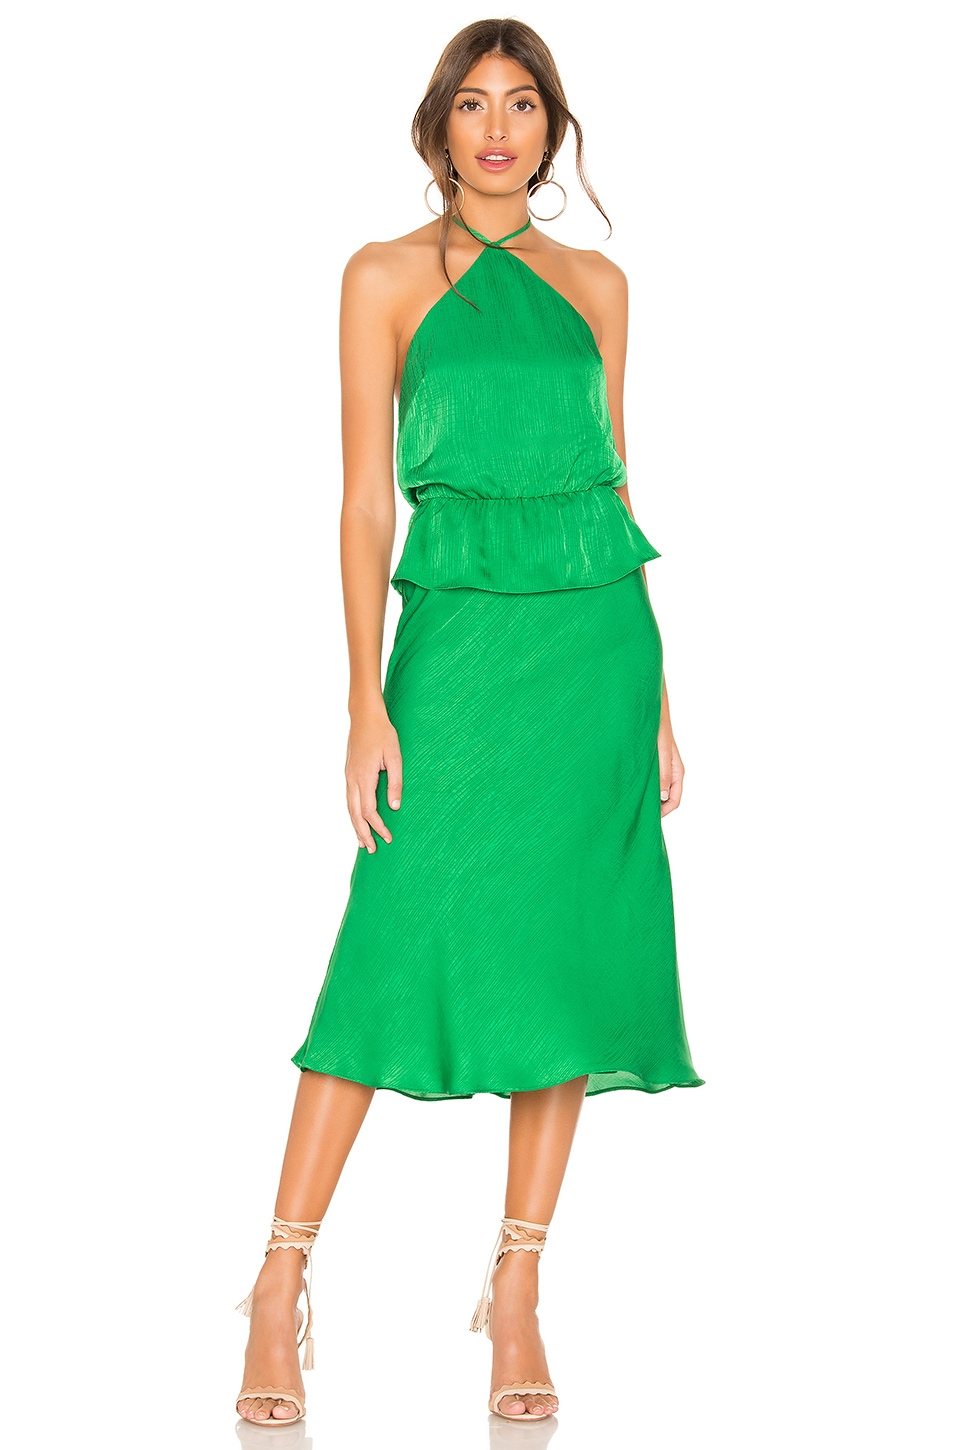 House of Harlow 1960 x REVOLVE Katrien Dress in Kelly Green